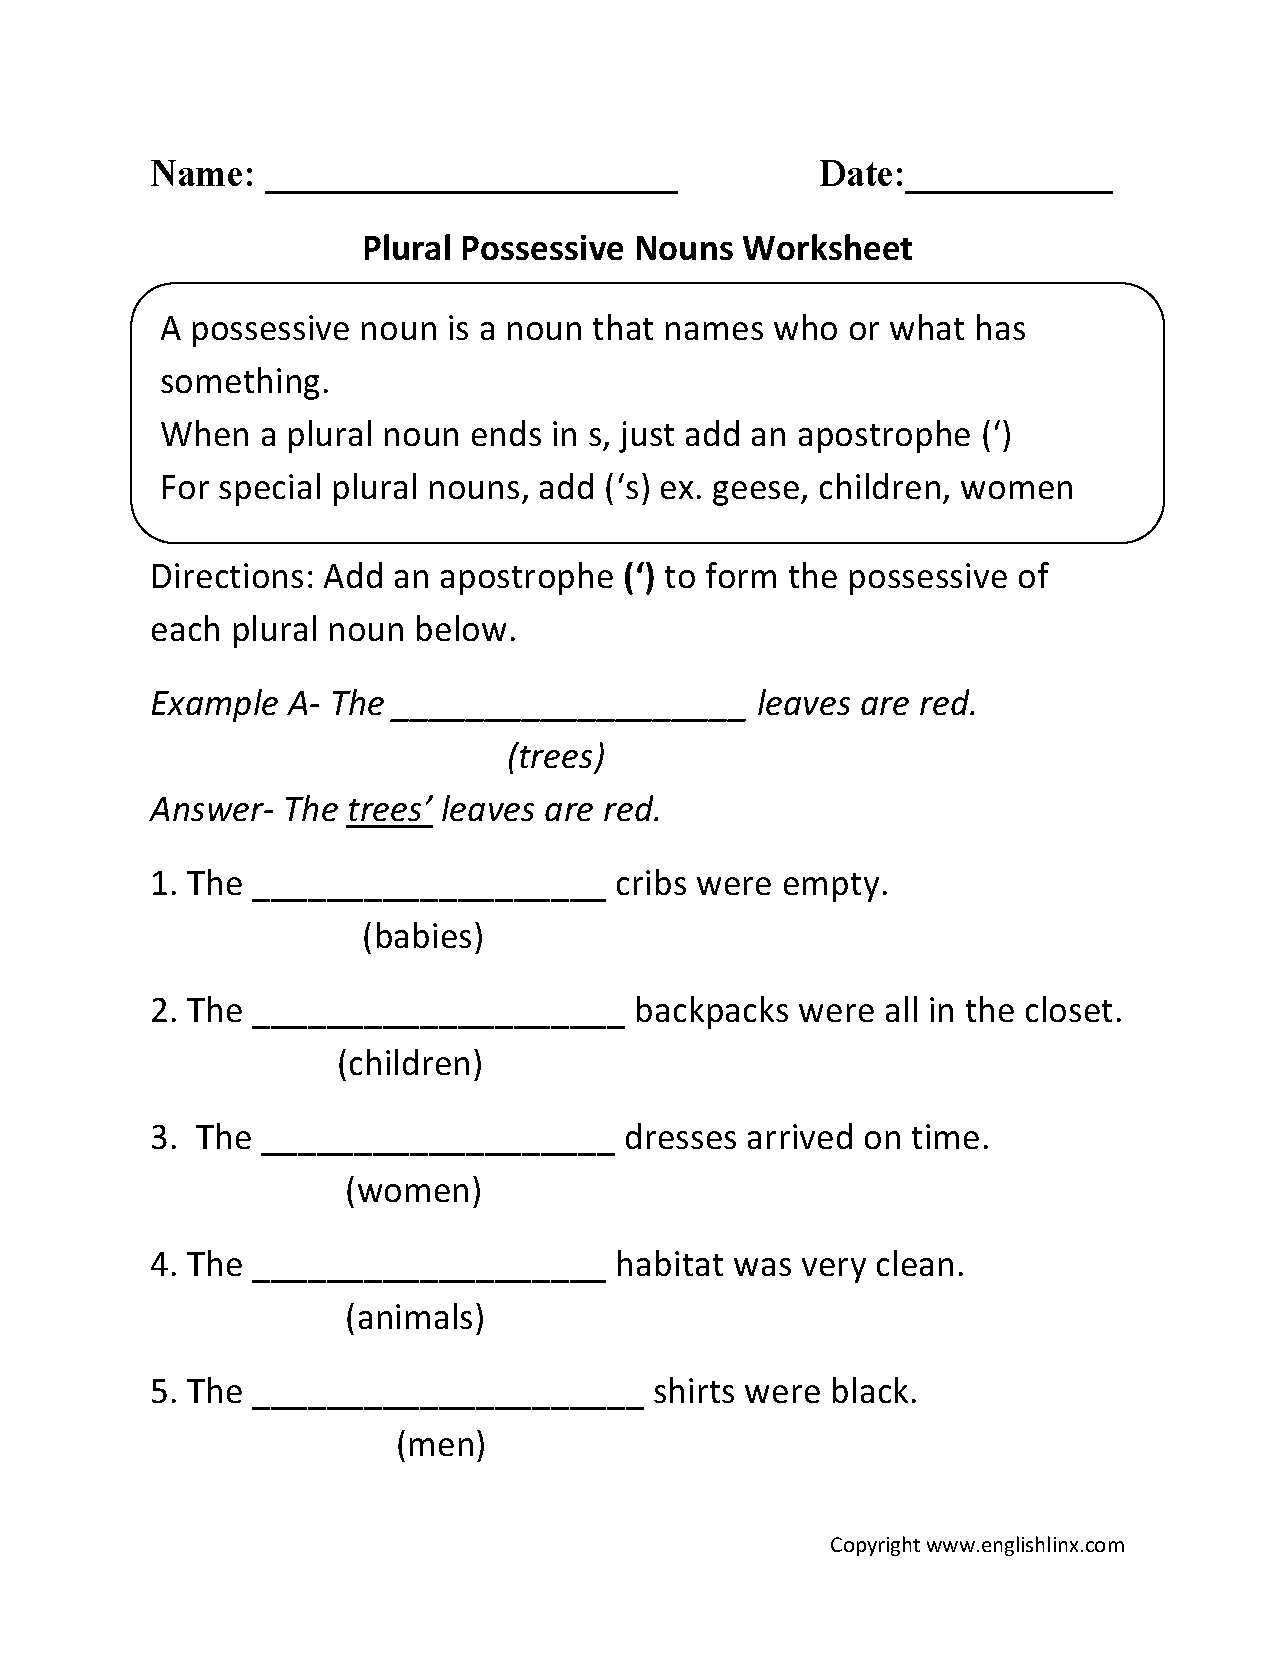 Plural Possessive Nouns Worksheets